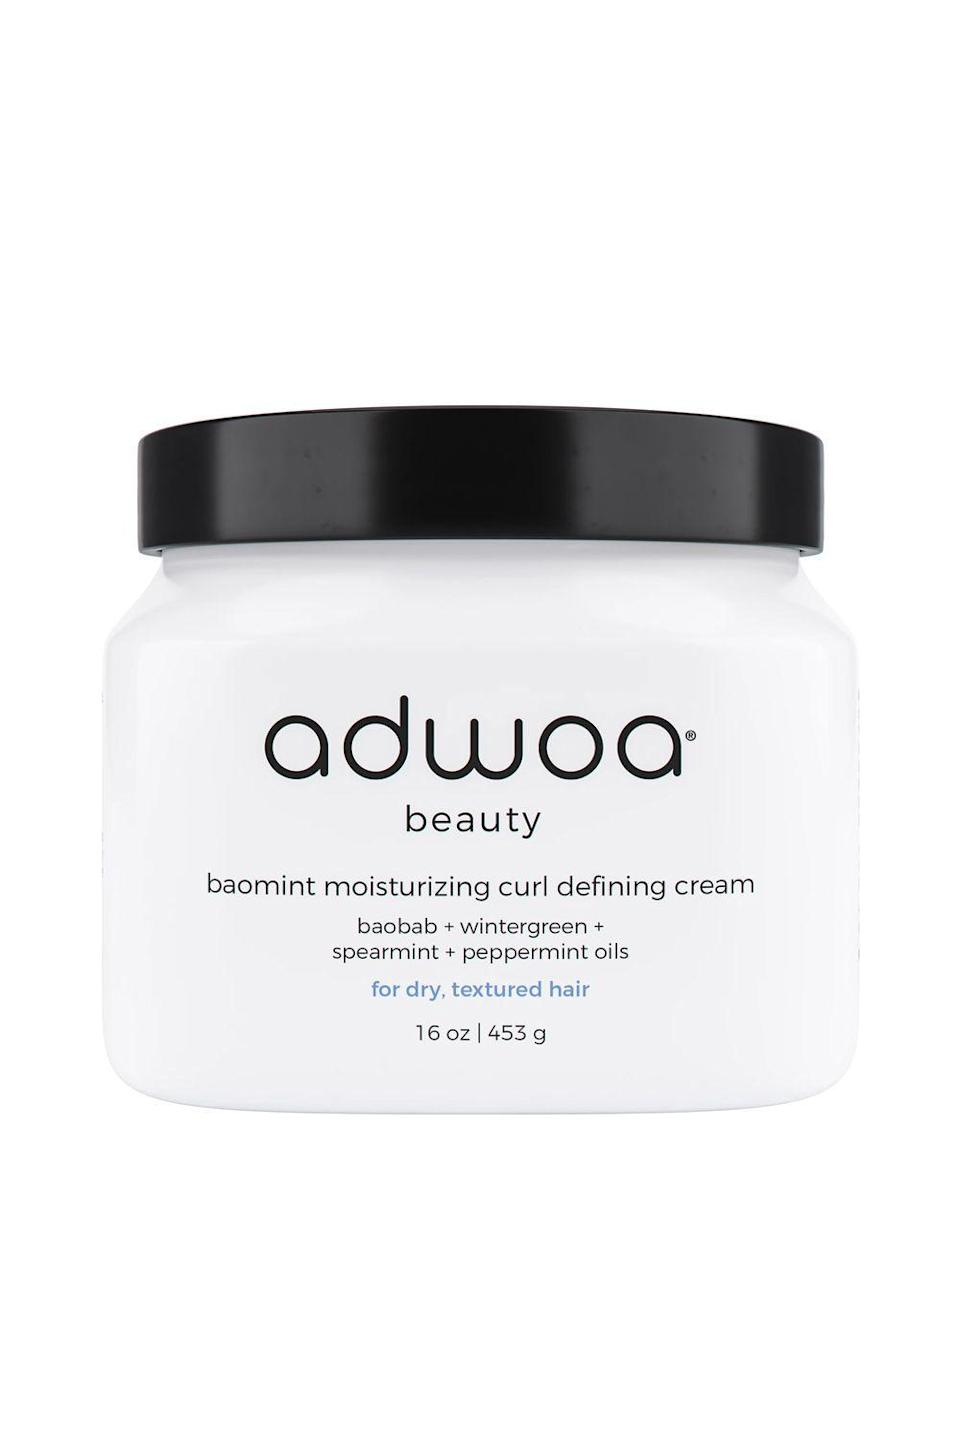 """<p><strong>adwoa beauty</strong></p><p>sephora.com</p><p><strong>$32.00</strong></p><p><a href=""""https://go.redirectingat.com?id=74968X1596630&url=https%3A%2F%2Fwww.sephora.com%2Fproduct%2Fadwoa-beauty-baomint-moisturizing-curl-defining-cream-P457236&sref=https%3A%2F%2Fwww.cosmopolitan.com%2Fstyle-beauty%2Fbeauty%2Fg33473200%2Fbest-organic-hair-products%2F"""" rel=""""nofollow noopener"""" target=""""_blank"""" data-ylk=""""slk:Shop Now"""" class=""""link rapid-noclick-resp"""">Shop Now</a></p><p>This ultra-rich organic <a href=""""https://www.cosmopolitan.com/style-beauty/beauty/a23066979/best-curl-cream-natural-hair/"""" rel=""""nofollow noopener"""" target=""""_blank"""" data-ylk=""""slk:curl cream"""" class=""""link rapid-noclick-resp"""">curl cream</a> is packed with tons of good-for-you ingredients, like moisturizing shea butter, conditioning honey, and smoothing silk proteins. Use it on wet, damp, or dry hair for <strong>curls and coils that are shiny, soft, defined, and hydrated as hell.</strong></p>"""